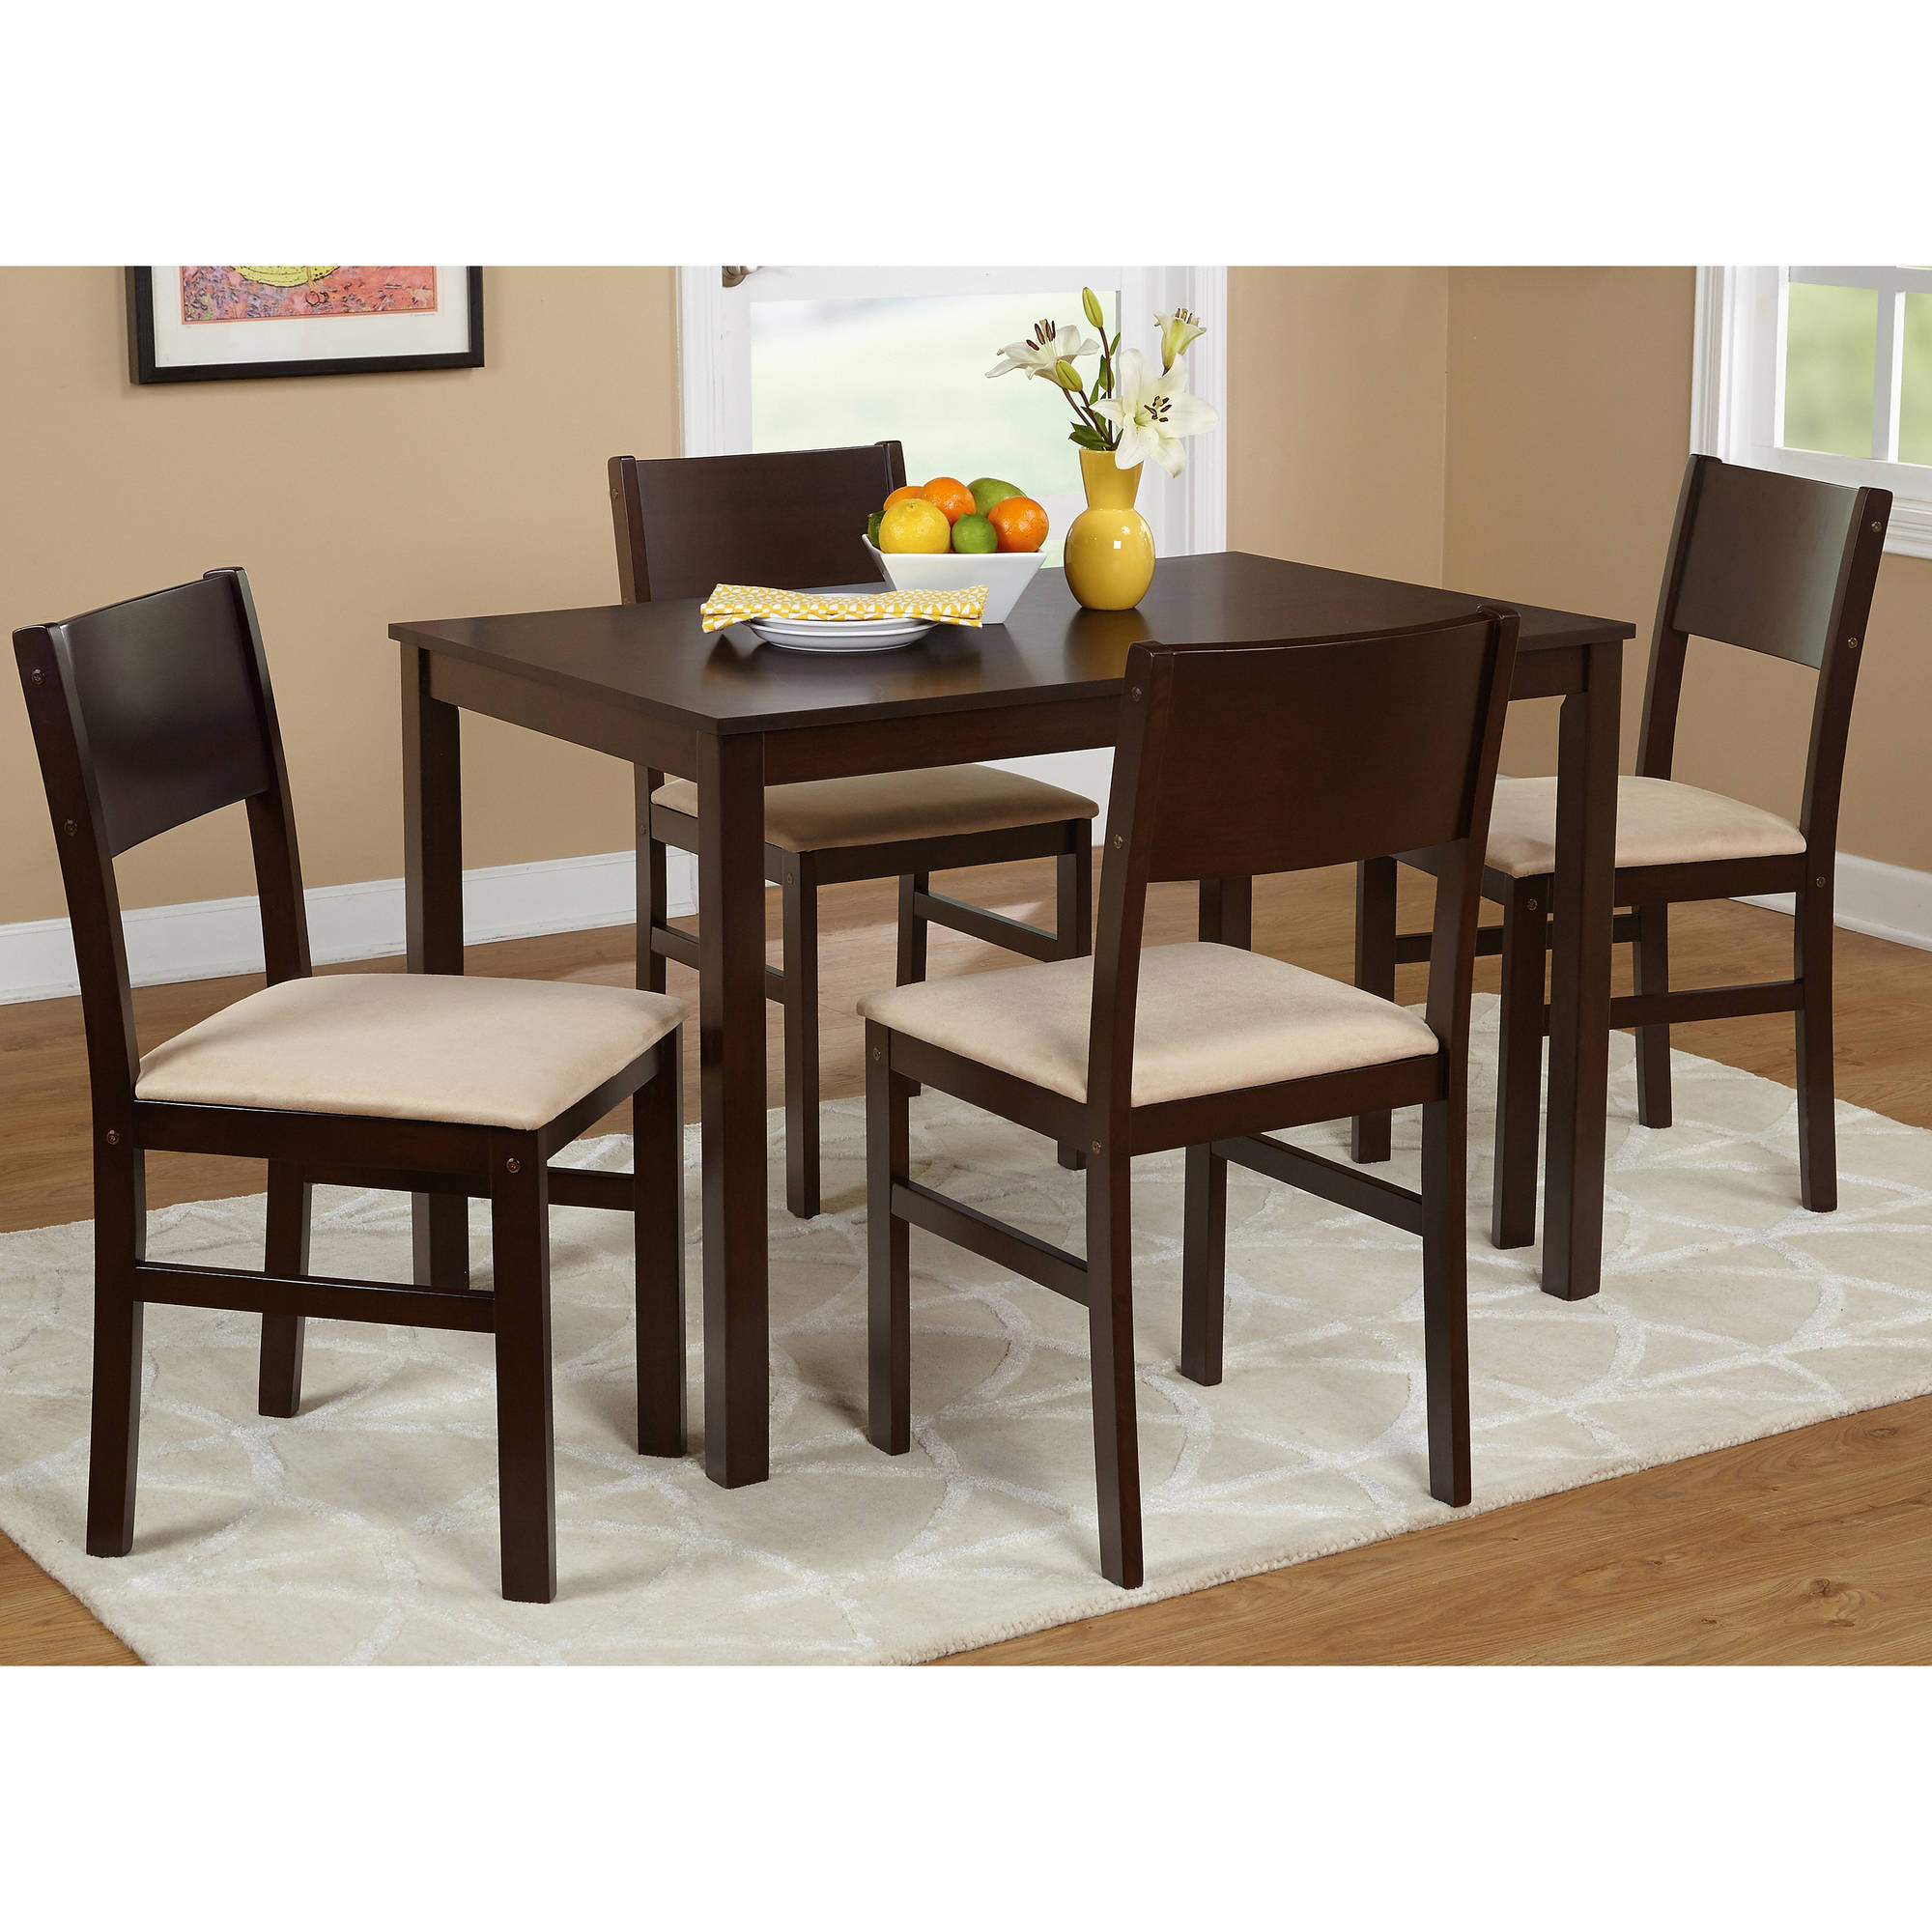 Lucca 5 Piece Dining Set, Multiple Colors   Walmart.com